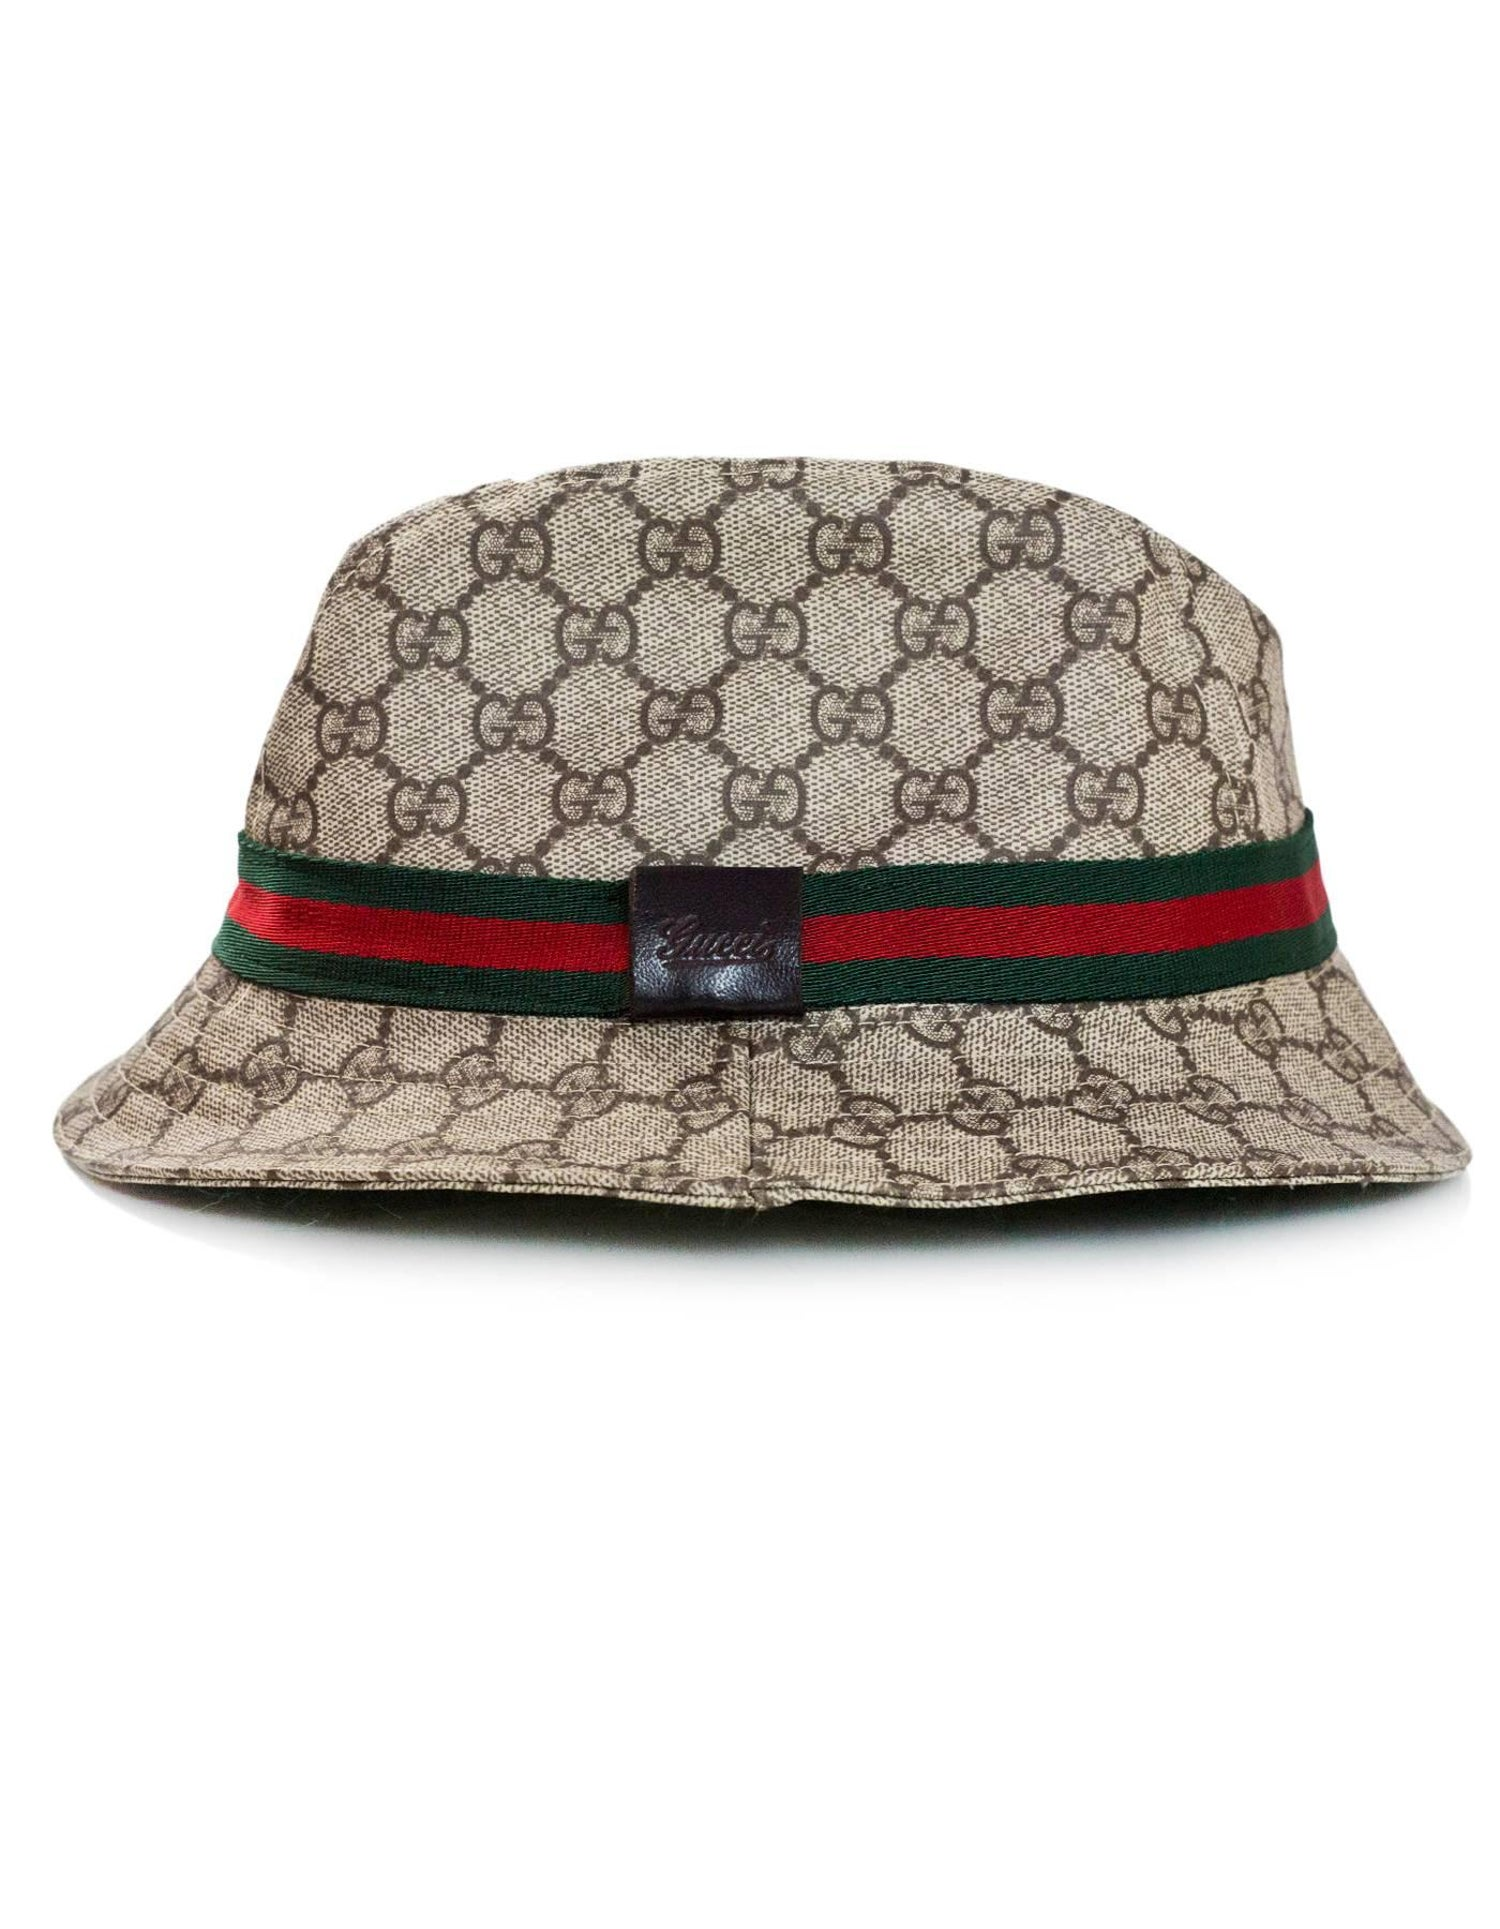 Gucci Monogram Supreme Bucket Hat Sz S For Sale at 1stdibs e4cb737dd94